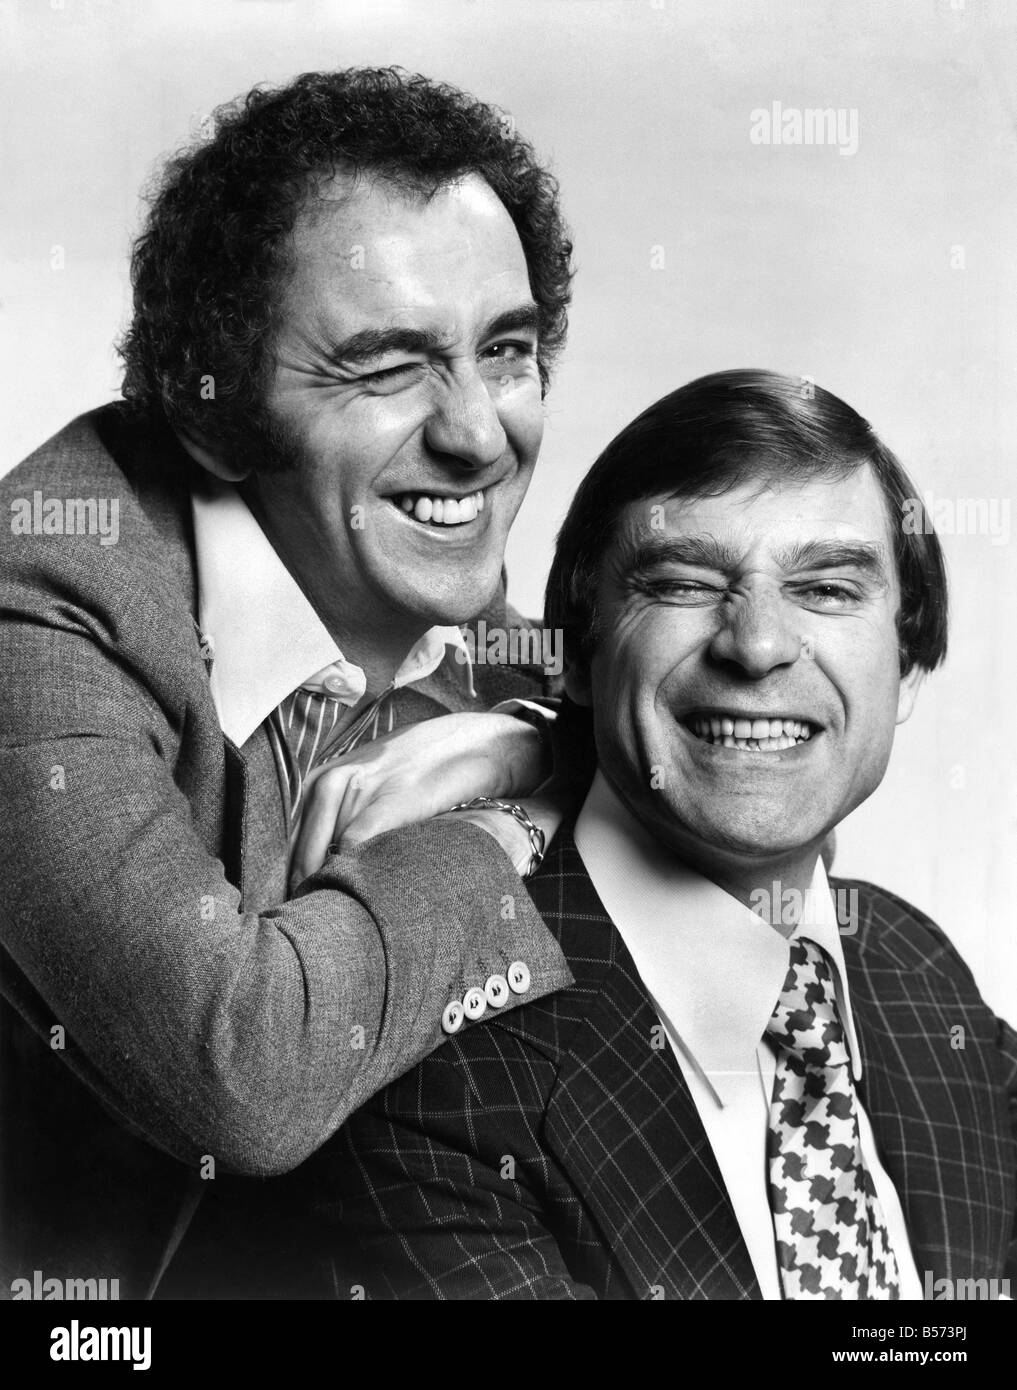 Pictures of Comedians Lennie Bennett and Gerry Stevens ...